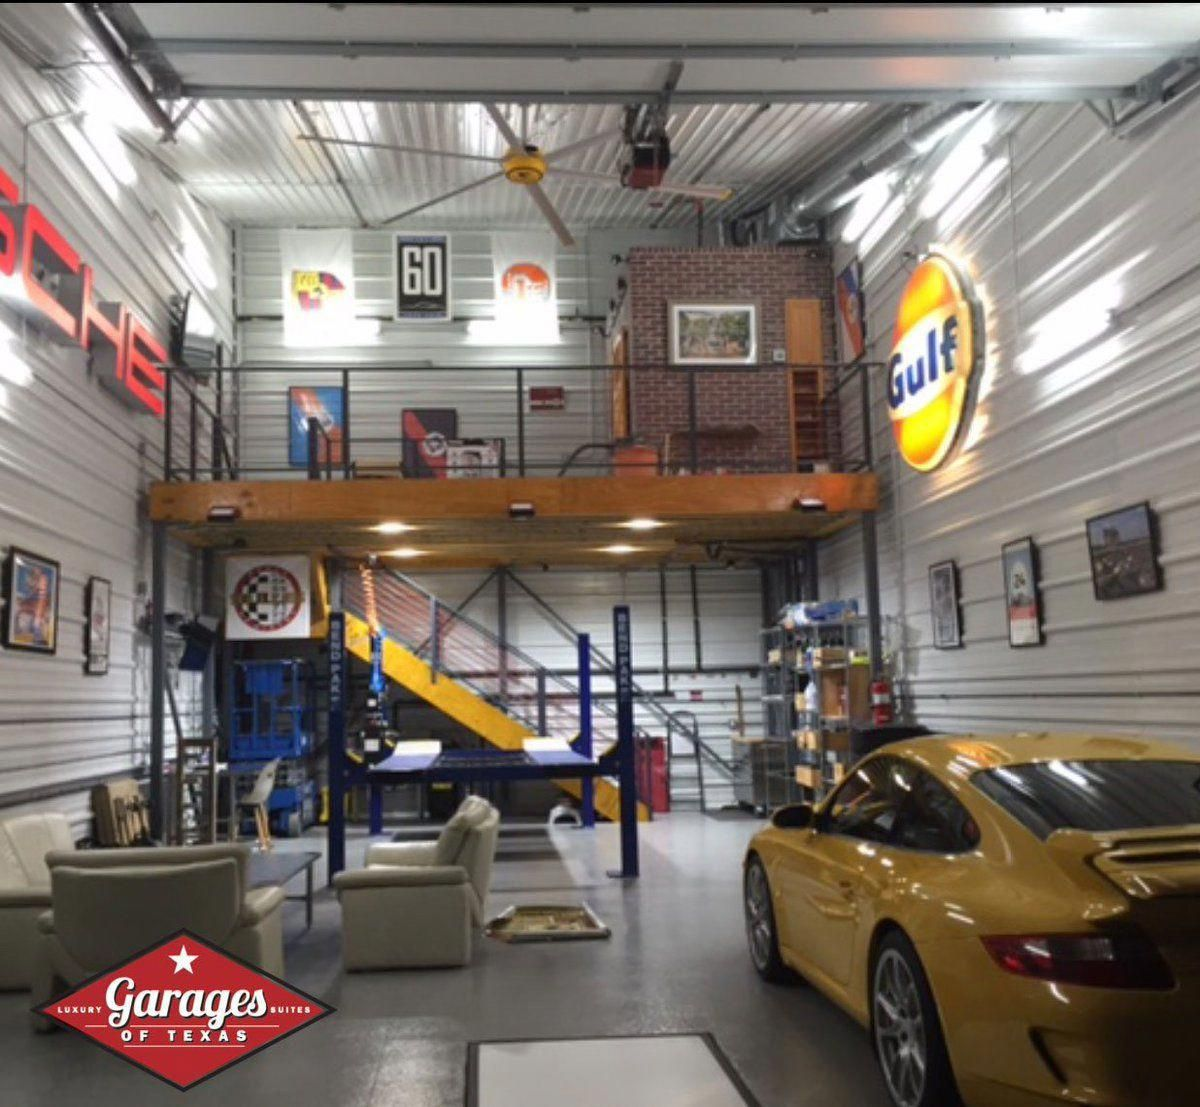 Read More About Amazing Mancave Renovation Ideas Diy Mancaveflow Mancavebarbershopmx Cool Garages Garage Interior Ultimate Garage